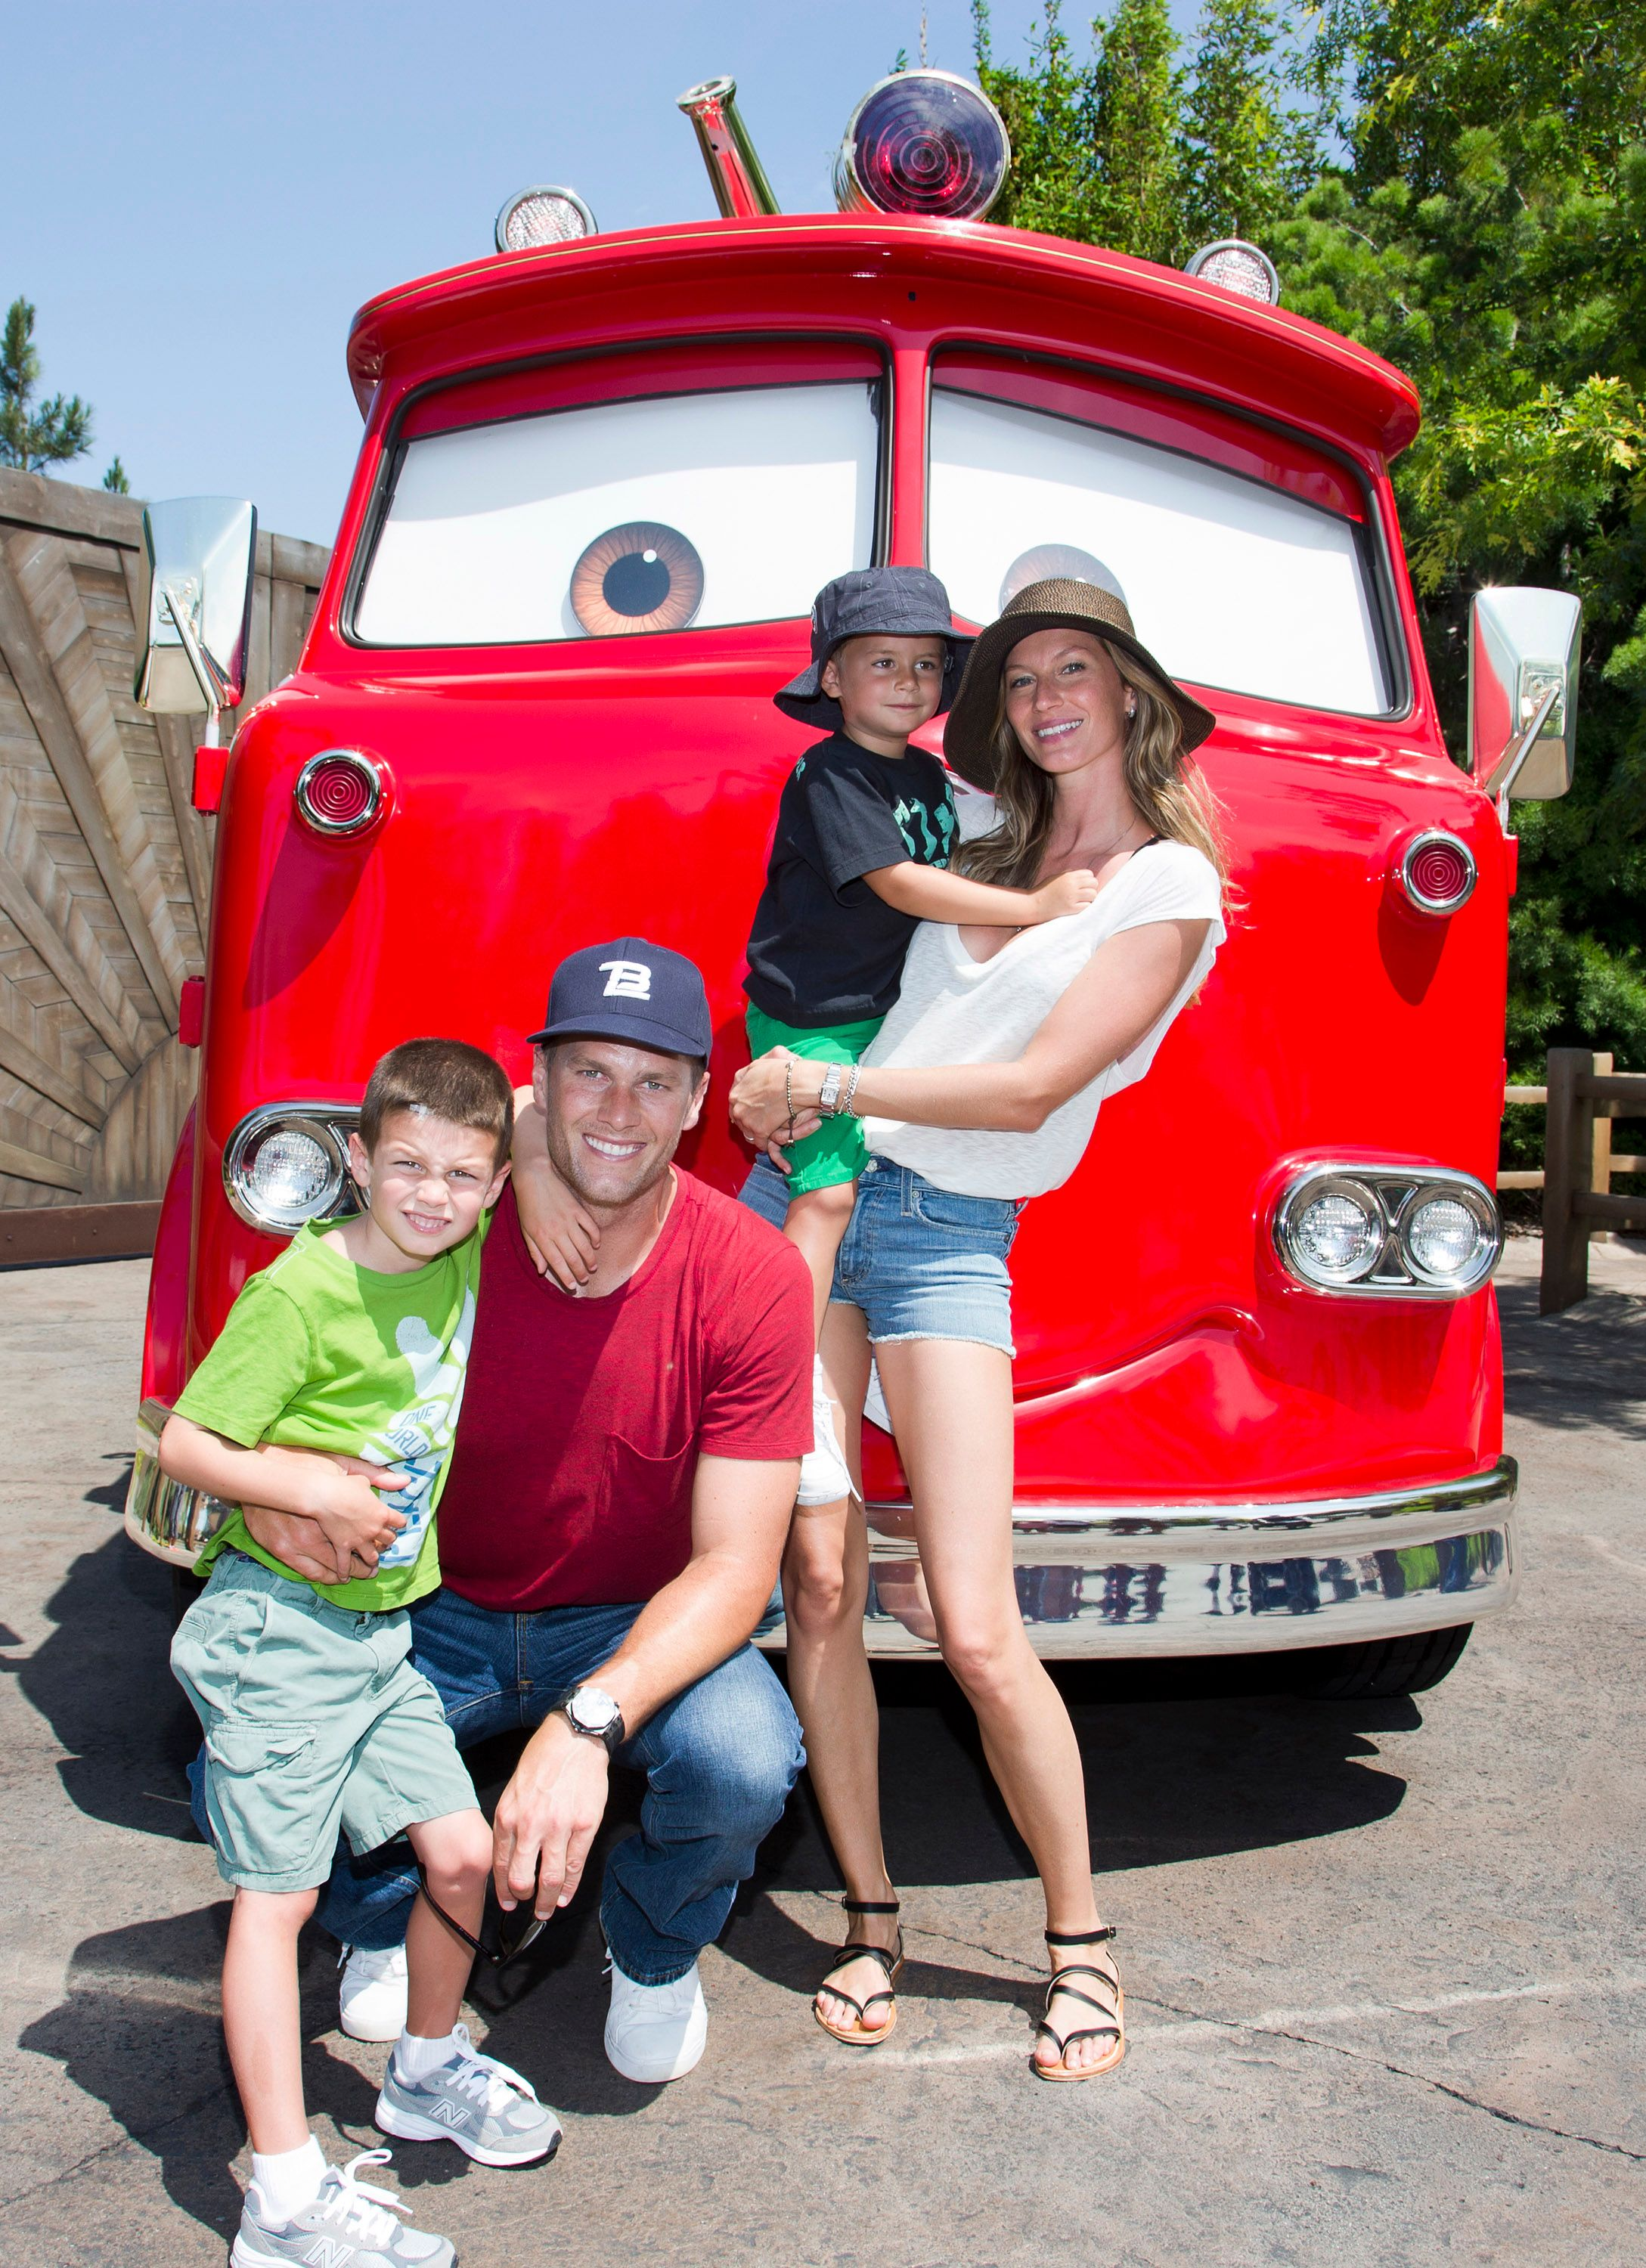 Tom Brady and Gisele Bundchen, with their sons Benjamin, and Jack at Disney California Adventure park in 2013 in Anaheim, California | Source: Getty Images